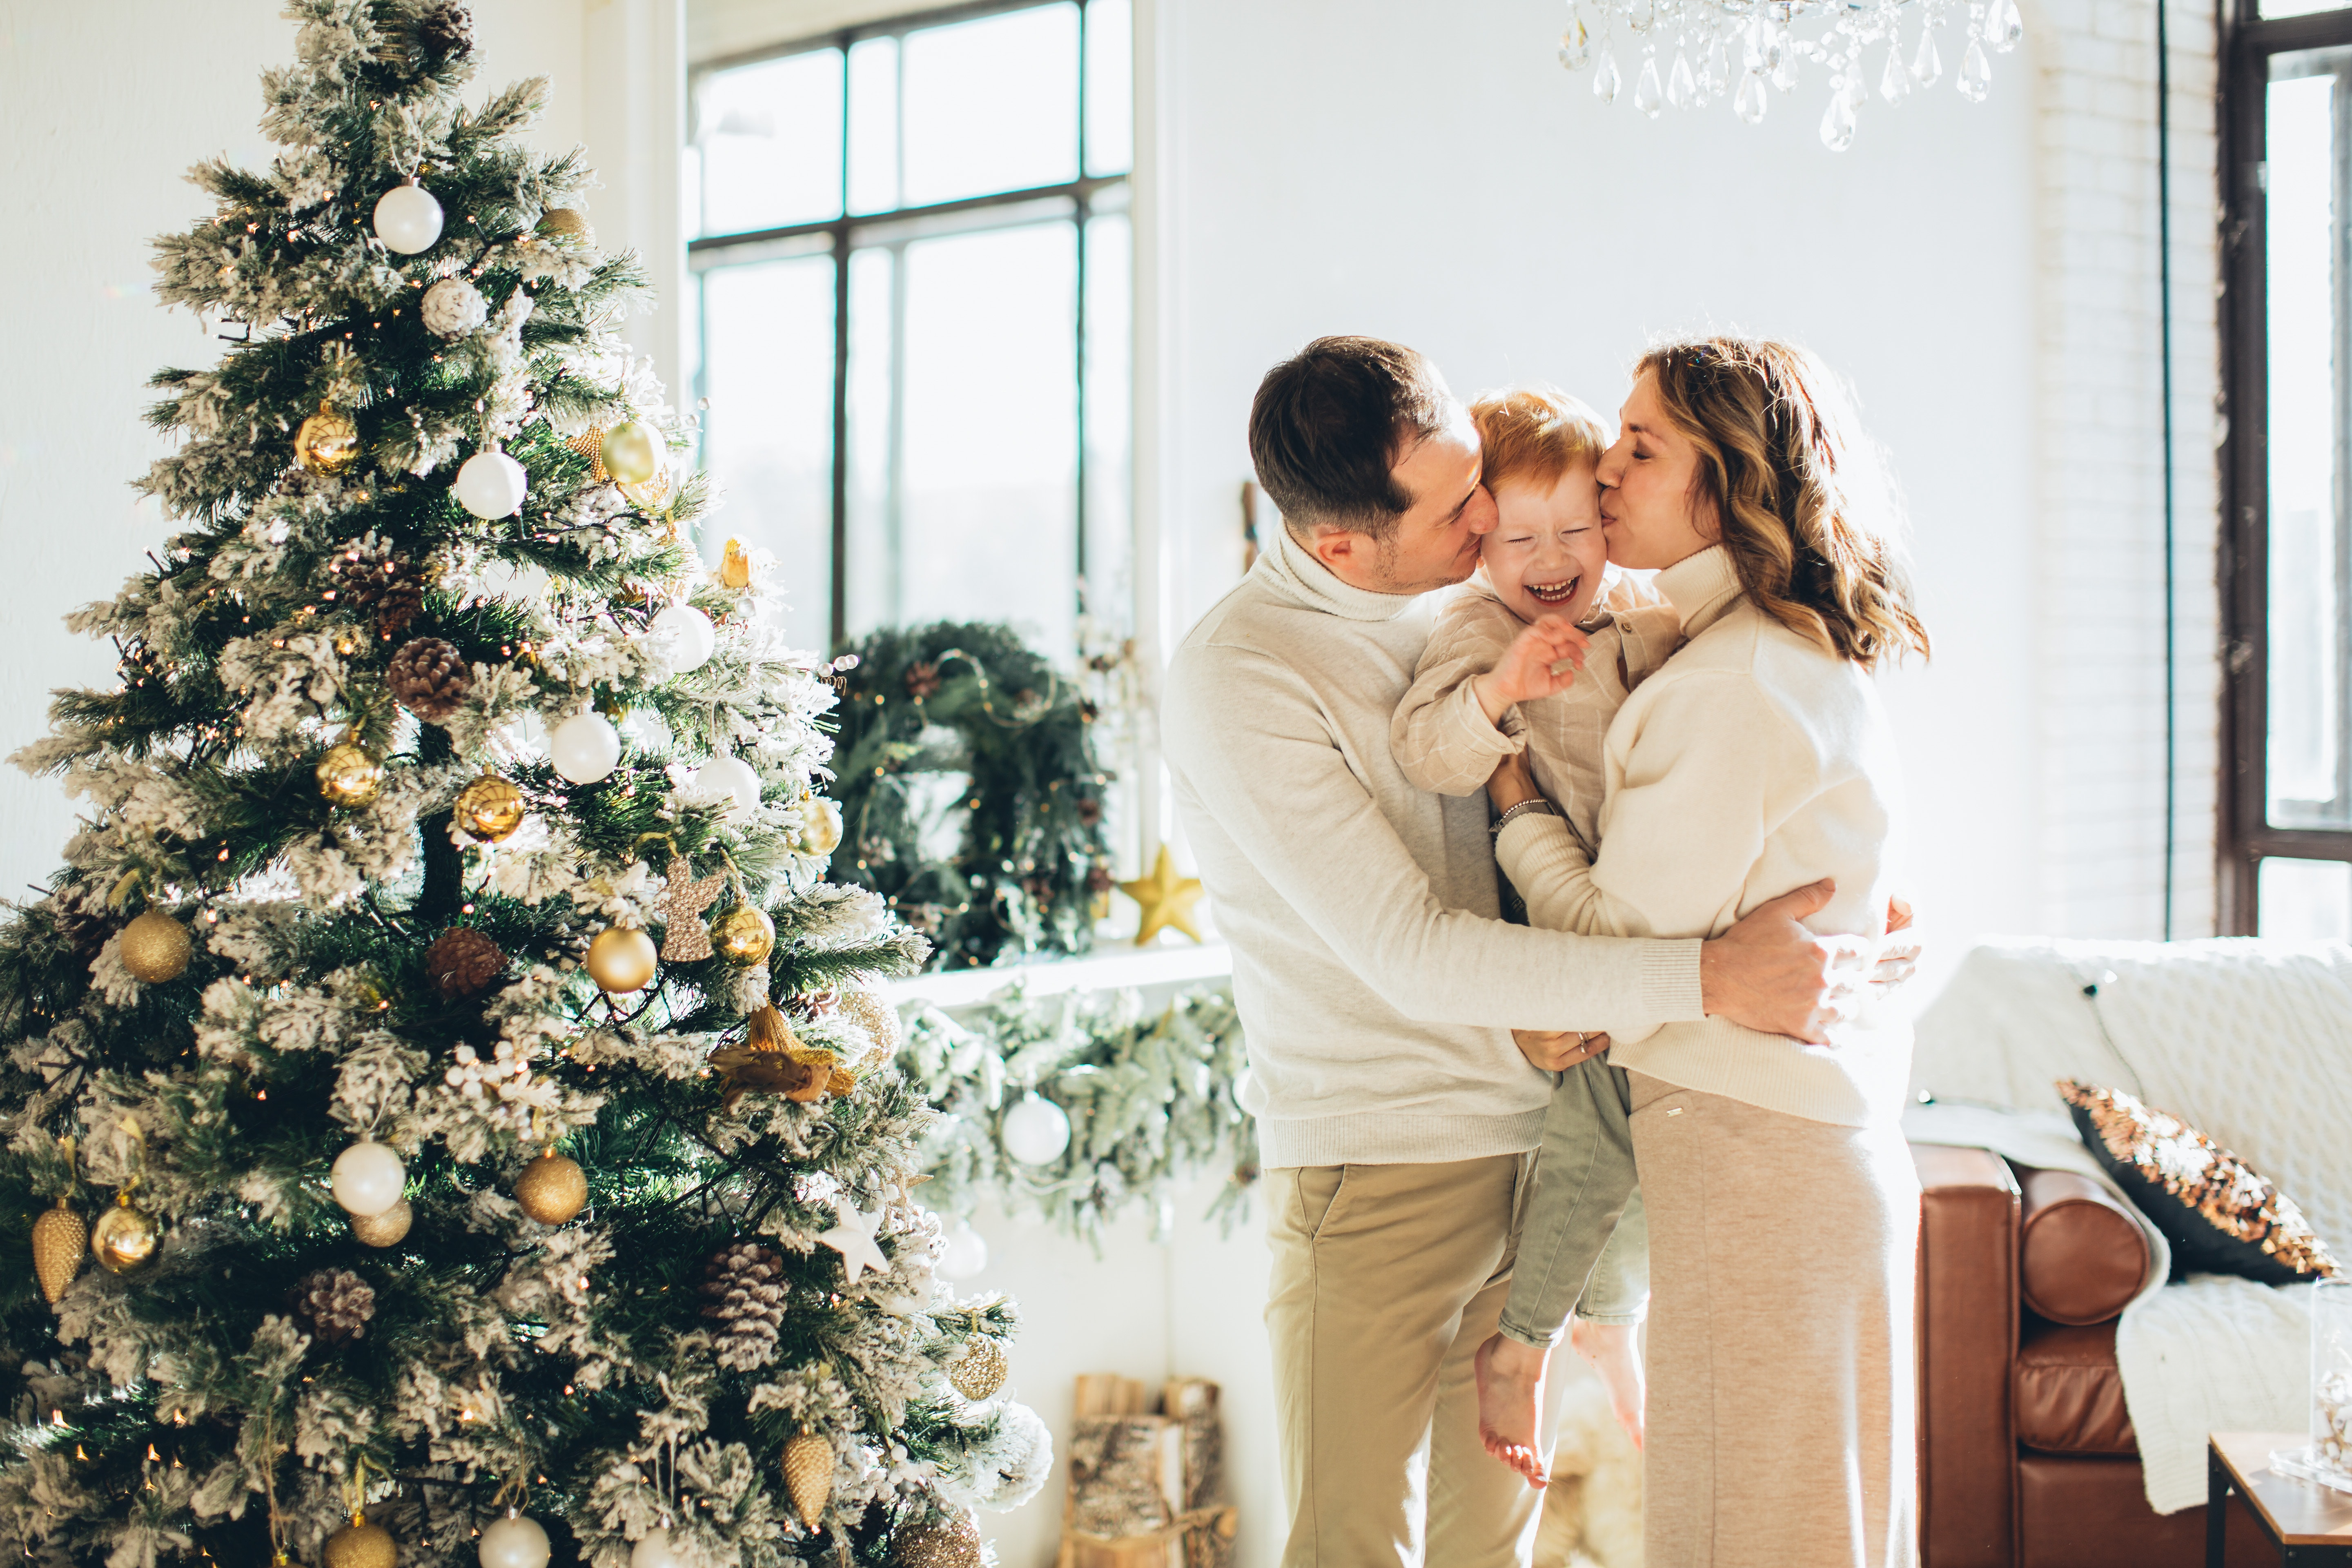 Parents and child by Christmas tree